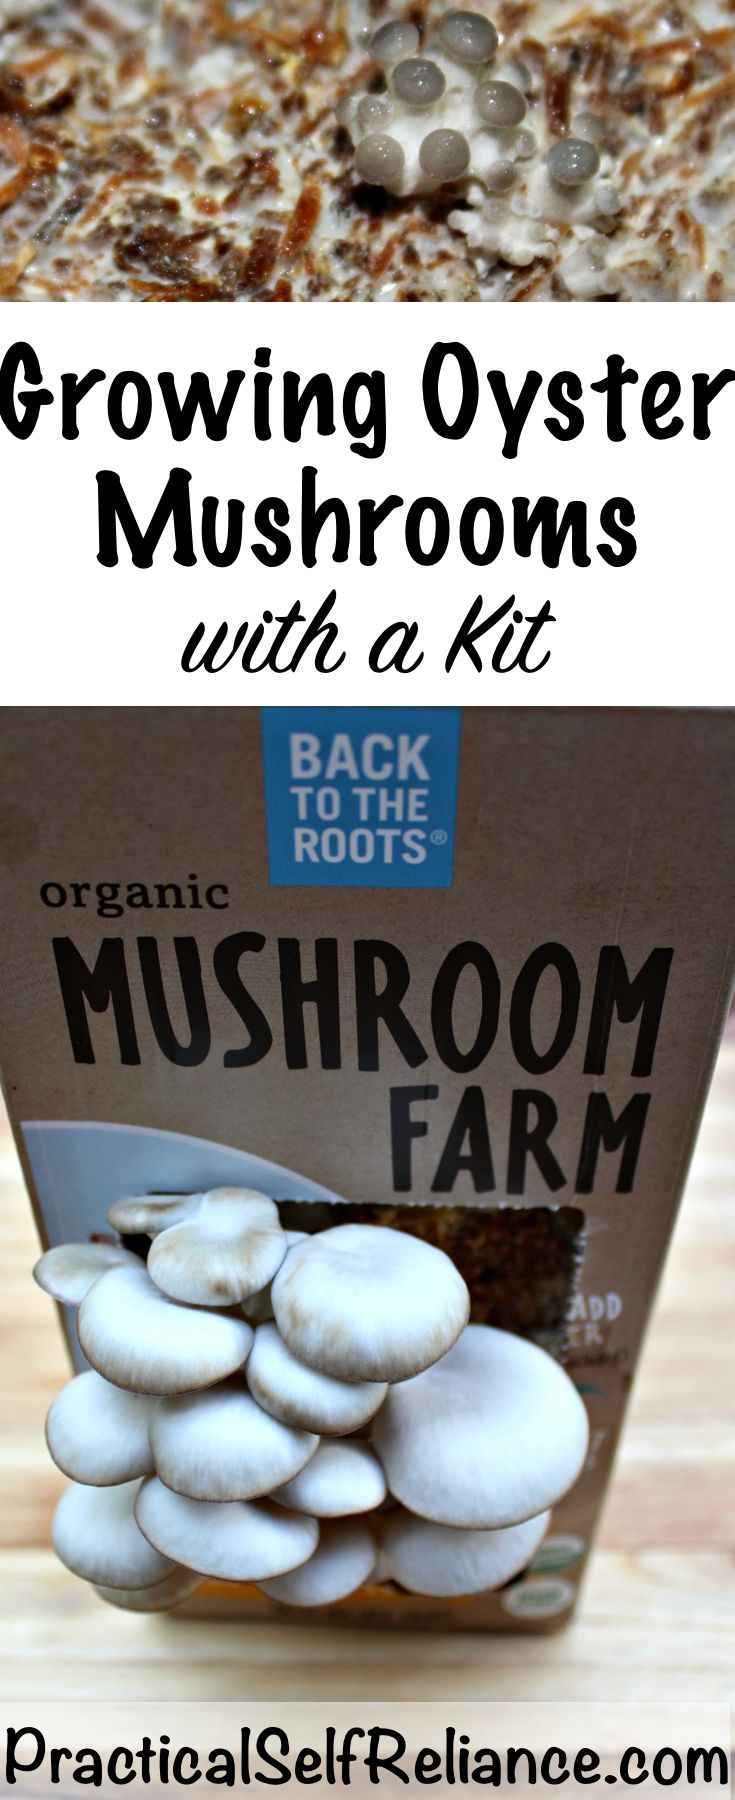 Growing Oyster Mushrooms with a Kit - Practical Self Reliance